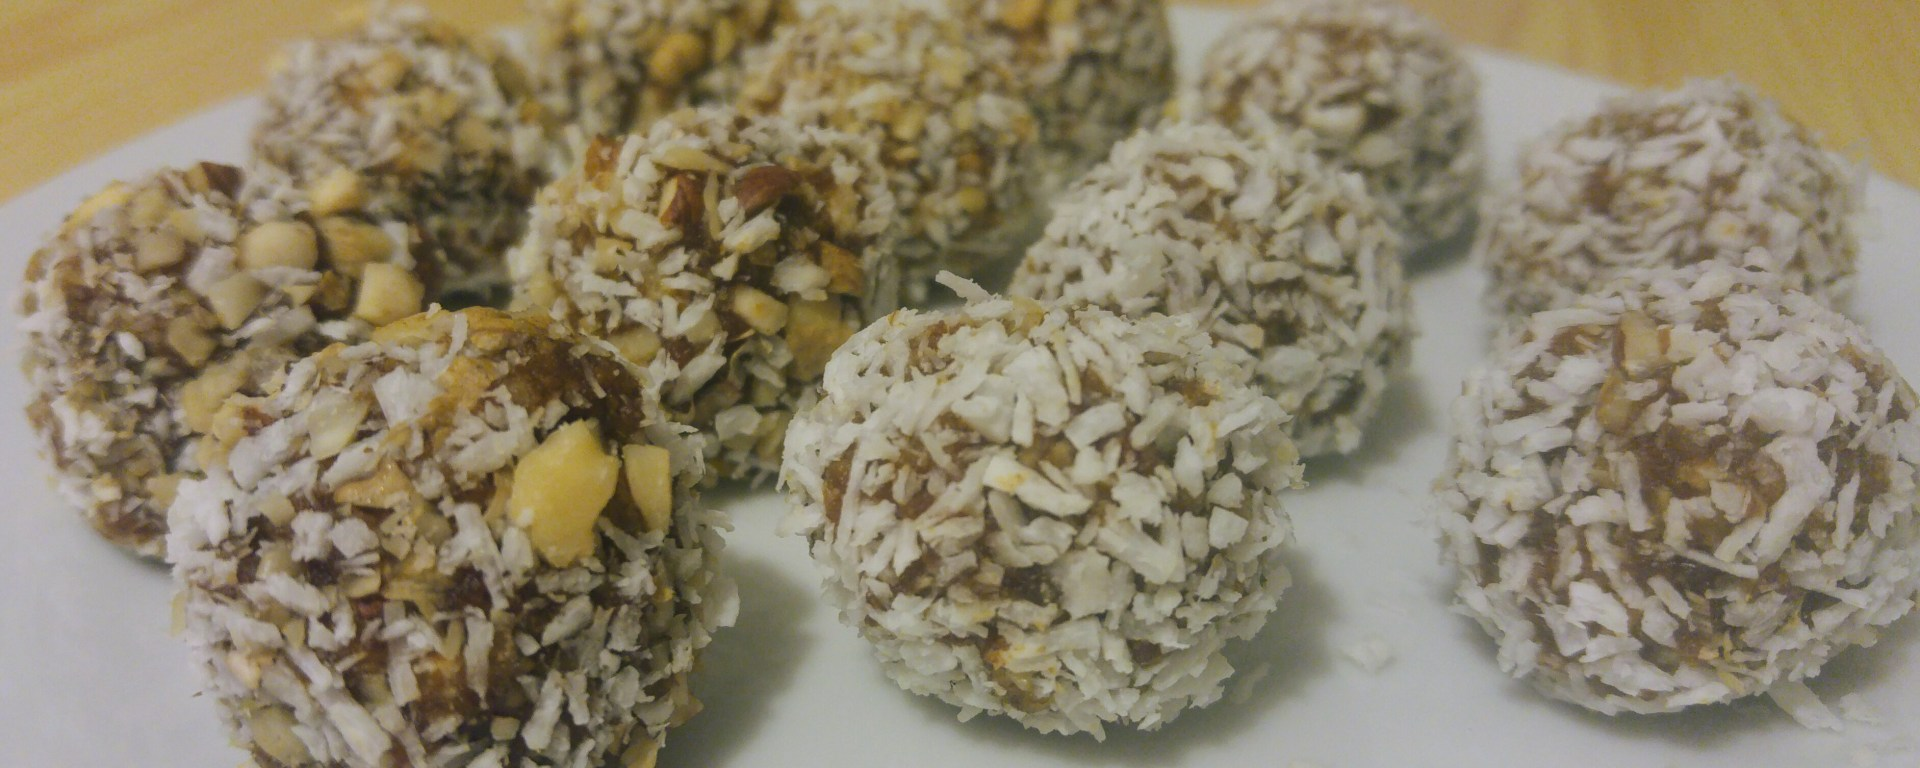 Small date balls covered with coconut, on a plate